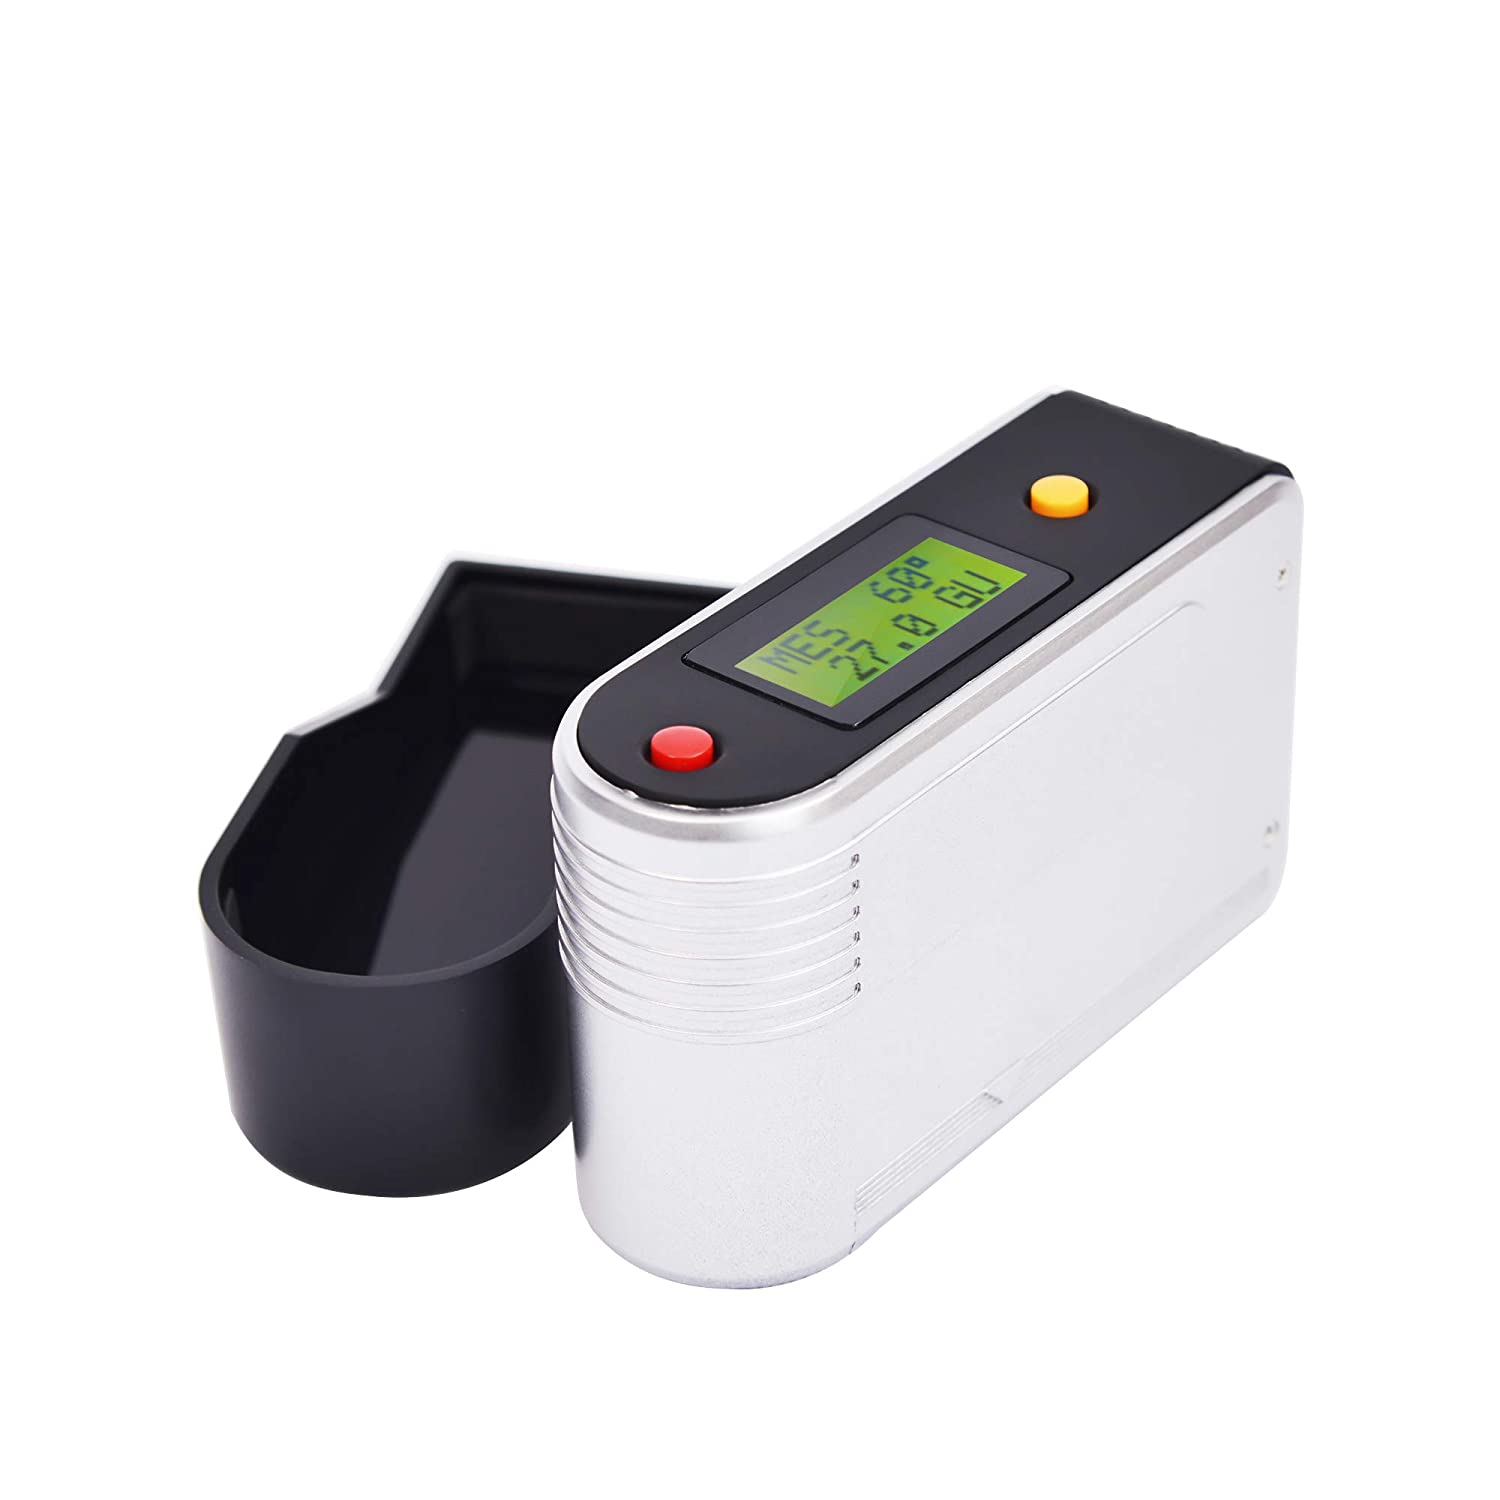 Glossmeter Fixed price for sale Selling and selling Gloss Meter Portable Digital Precision 60°